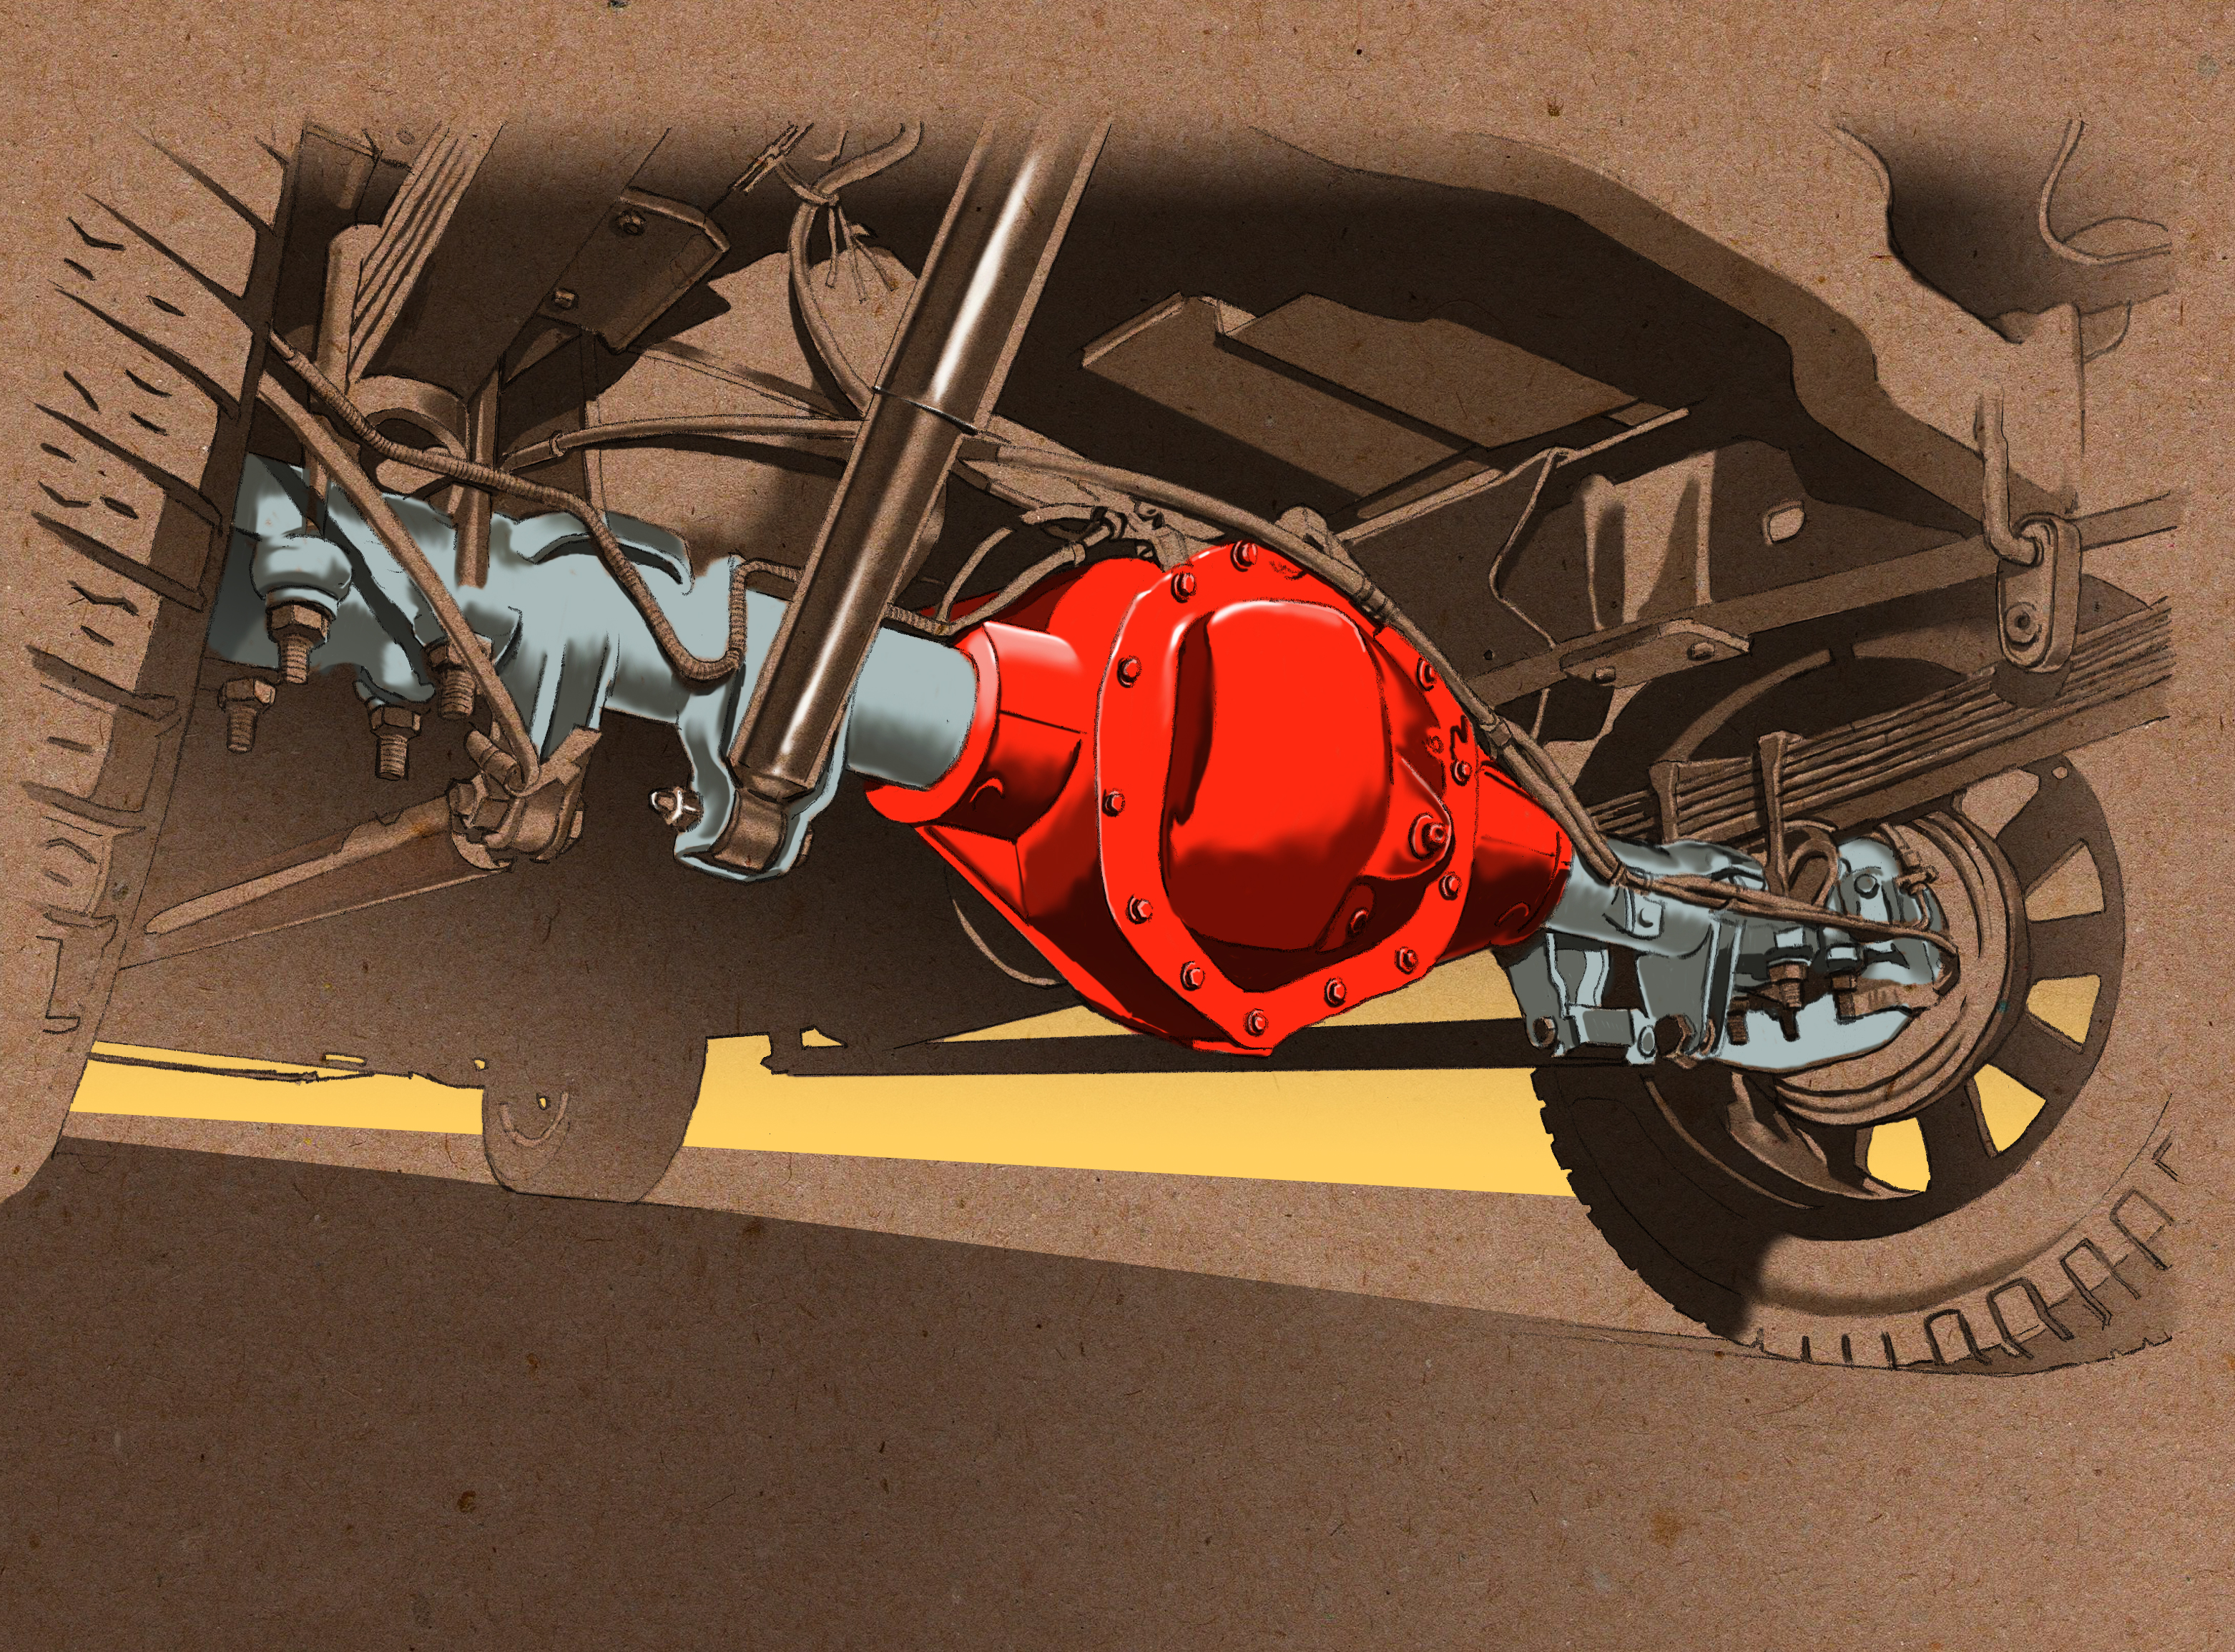 A rear axle. Painted in Photoshop, with pencil drawing.